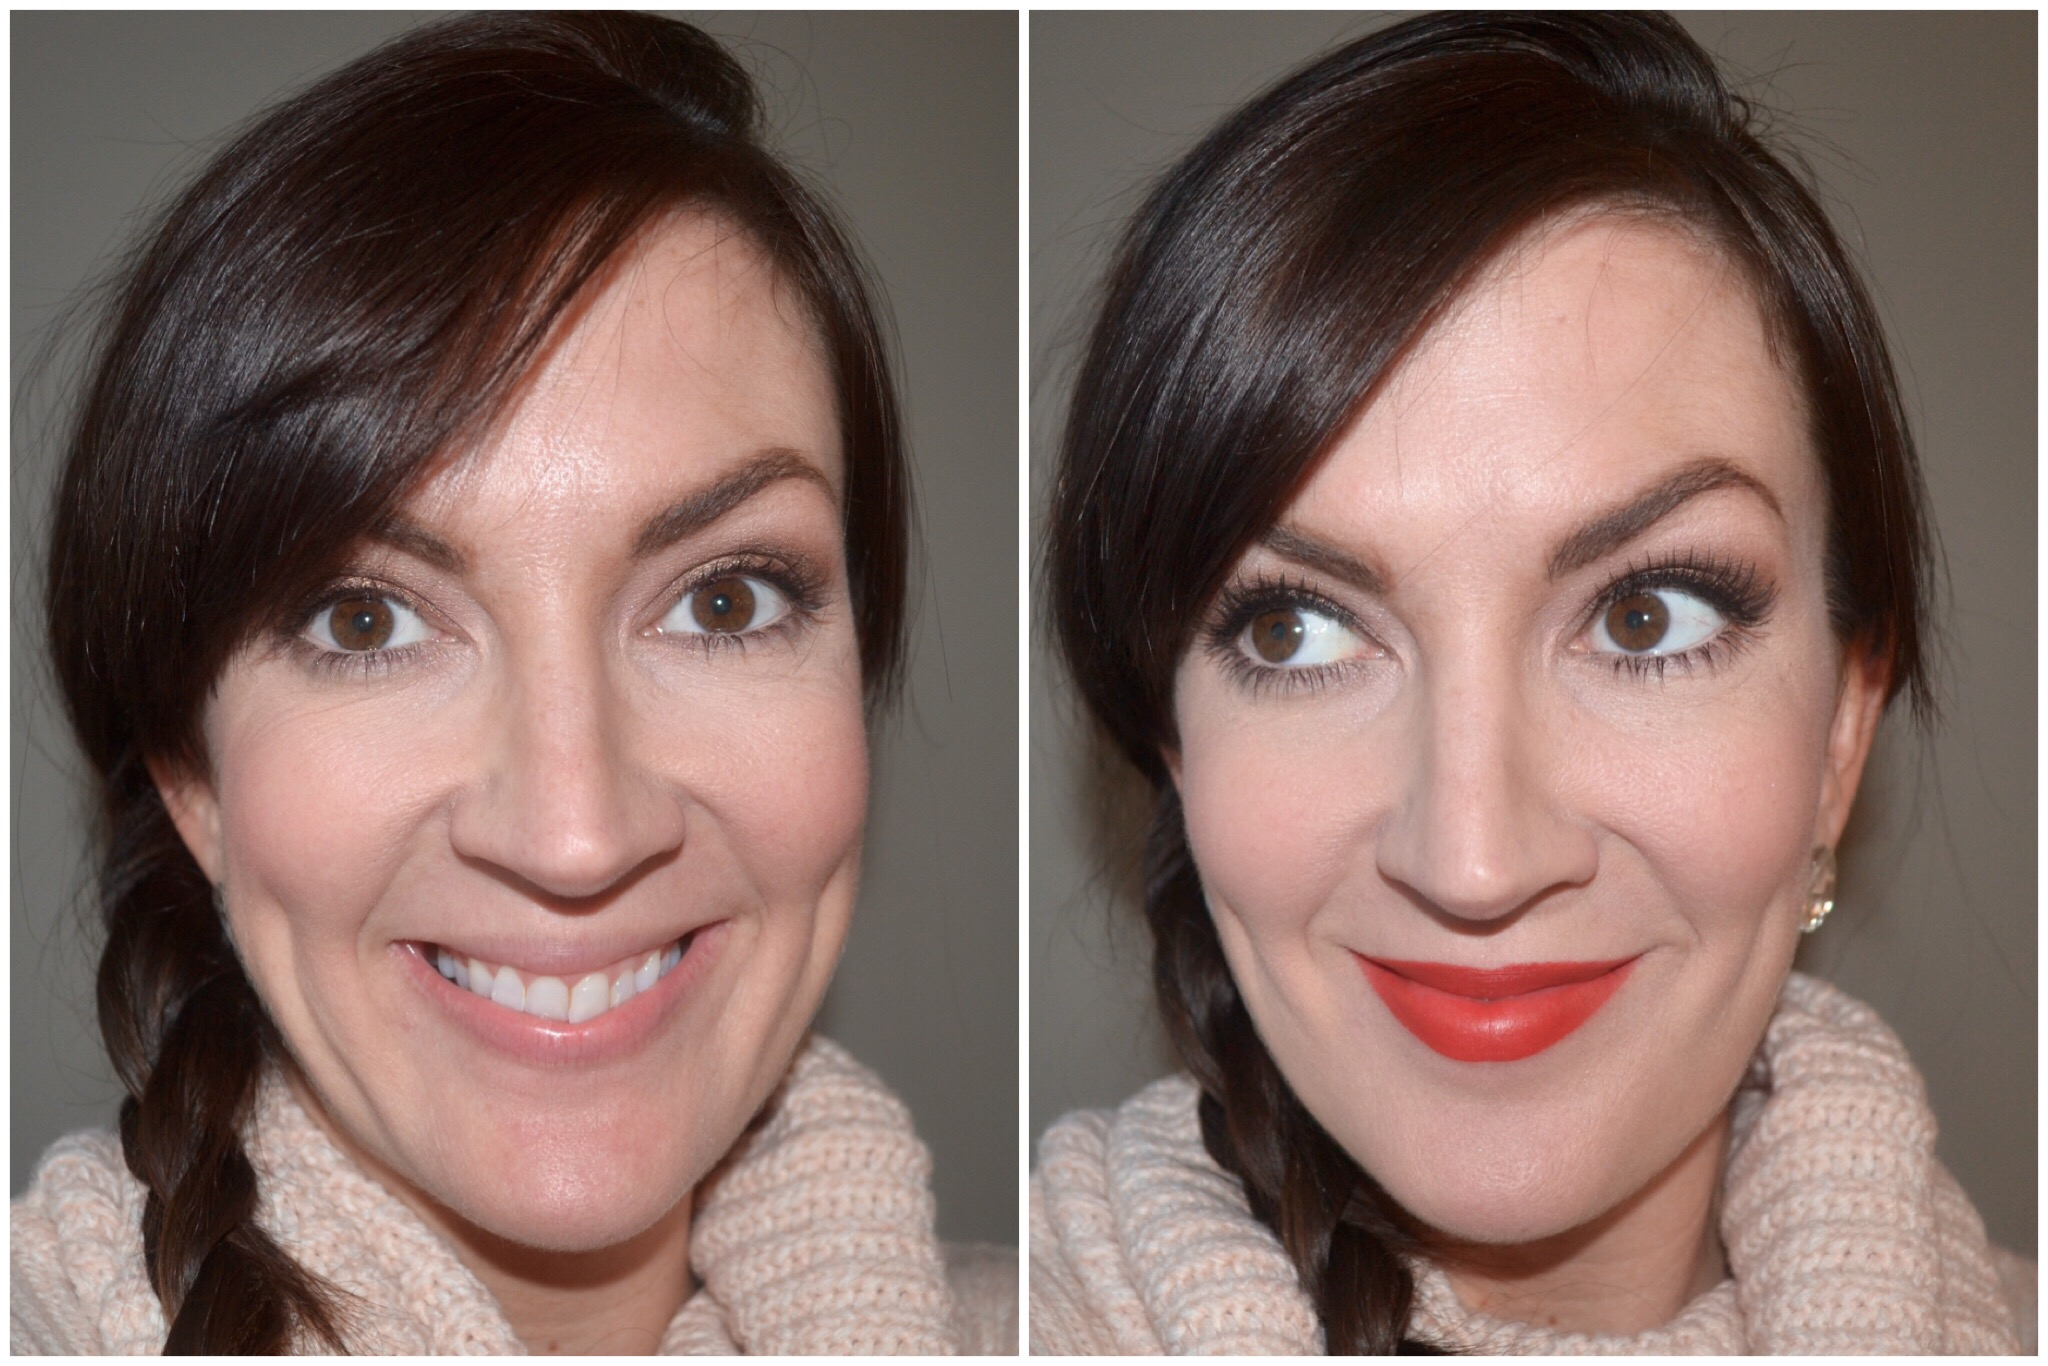 Easy Ways To Glam Up Your Everyday Makeup + MeVee